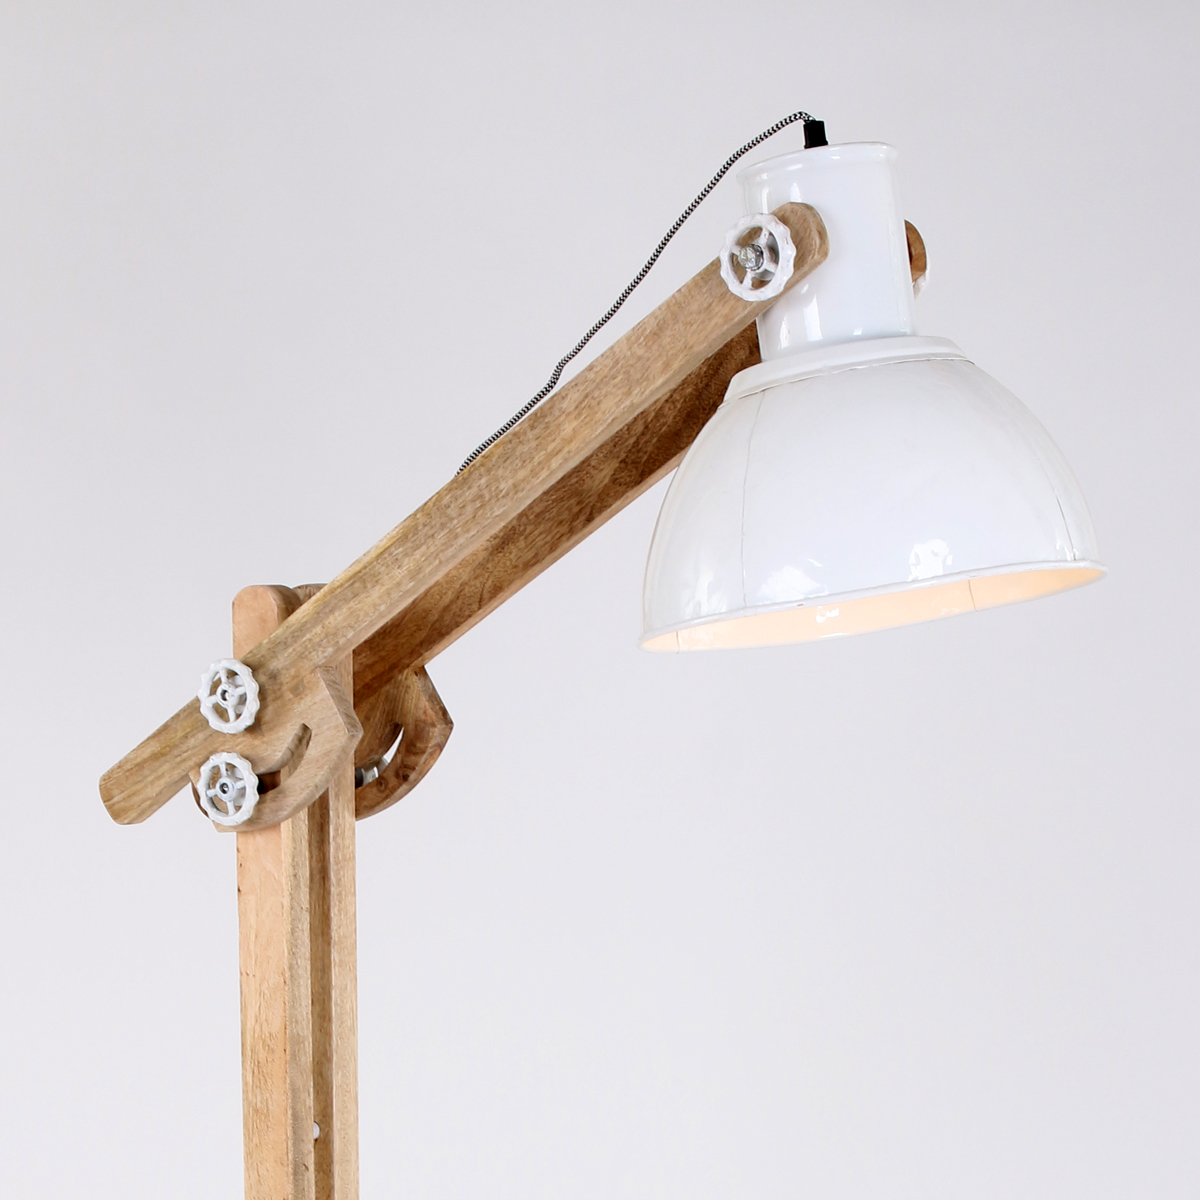 3 Arm Arc Floor Lamp >> siemens raritaet industrie lampe bauhaus design emaille ...